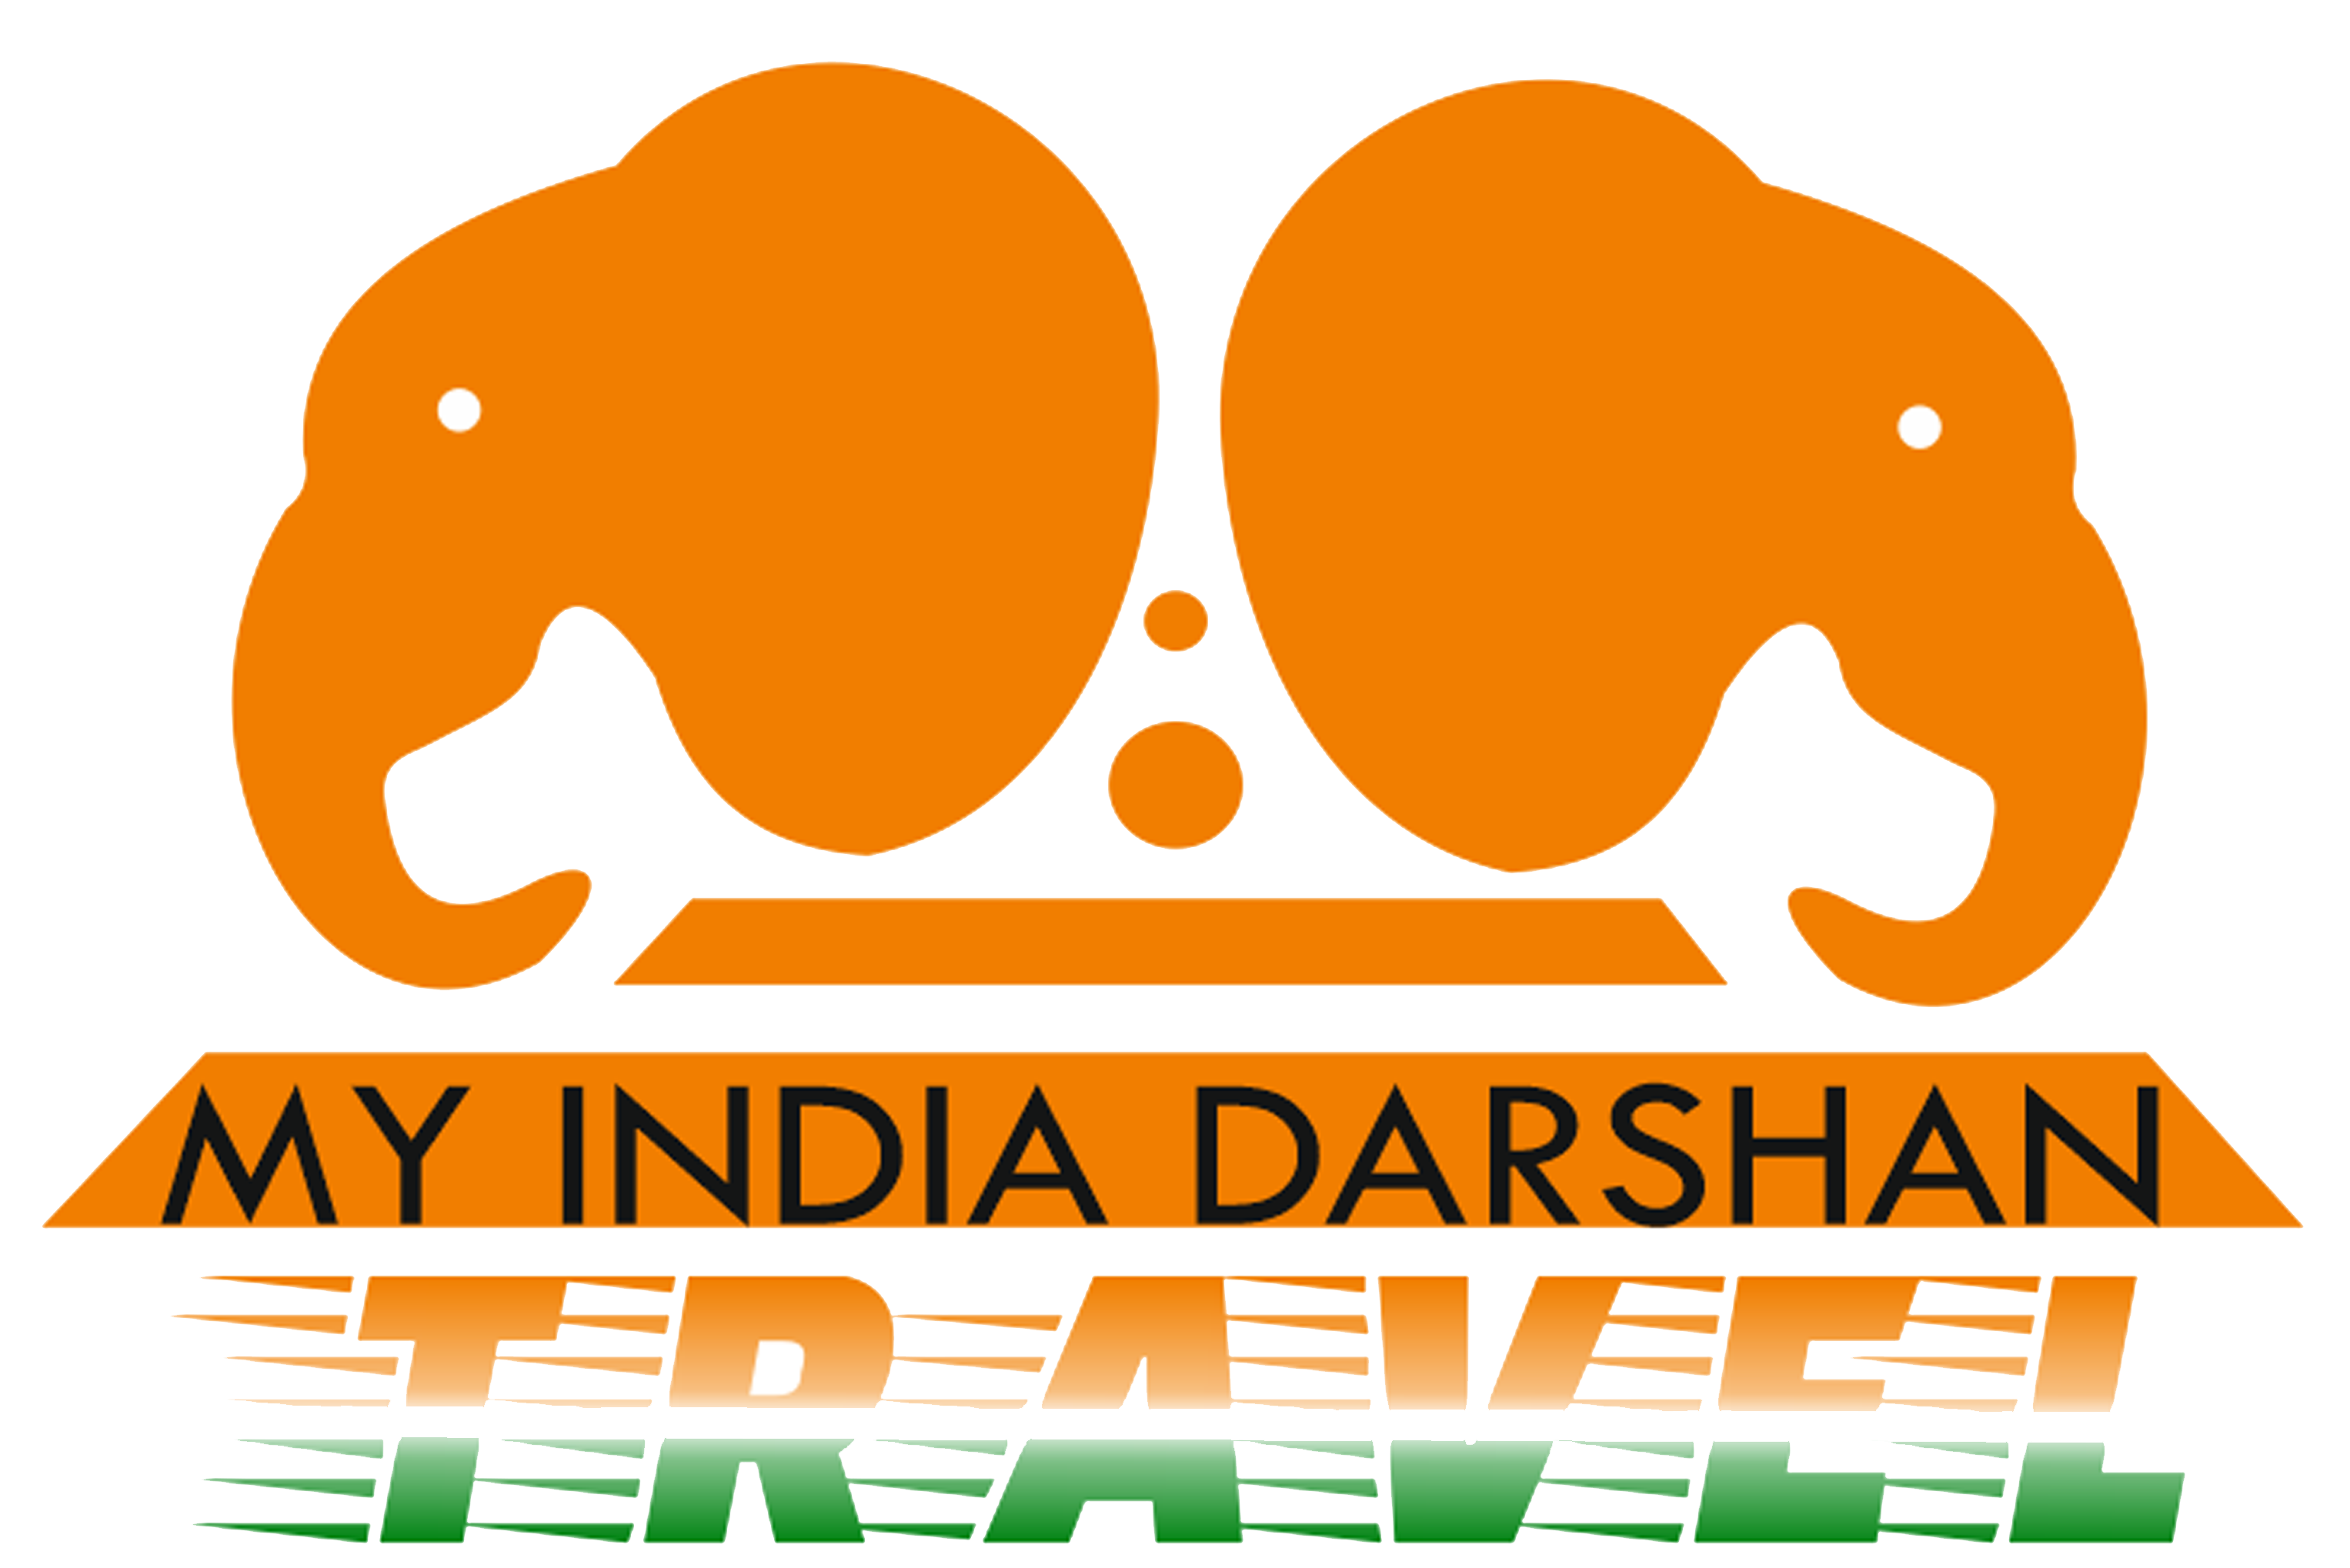 -MY INDIA DARSHAN LOGO